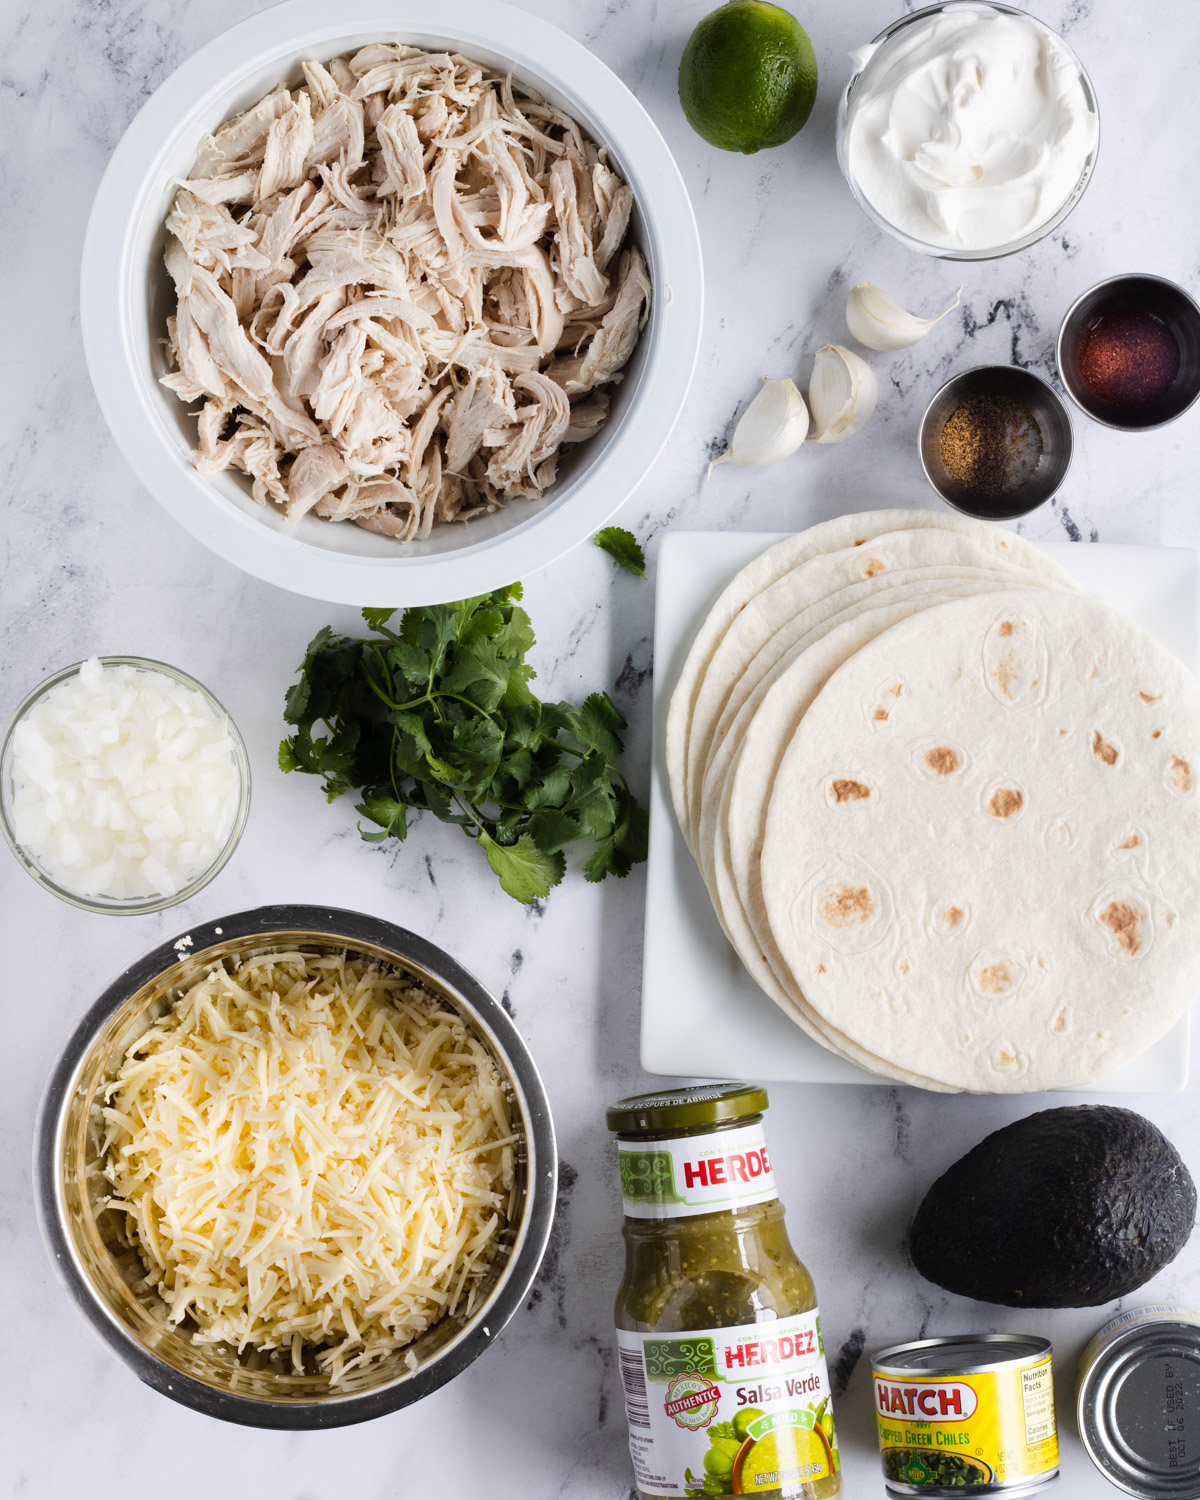 Ingredients for enchiladas: chicken, lime, sour cream, garlic, chile powder, cumin, tortillas, avocado, green chiles, salsa verde, shredded cheese, cilantro, and chopped onion.